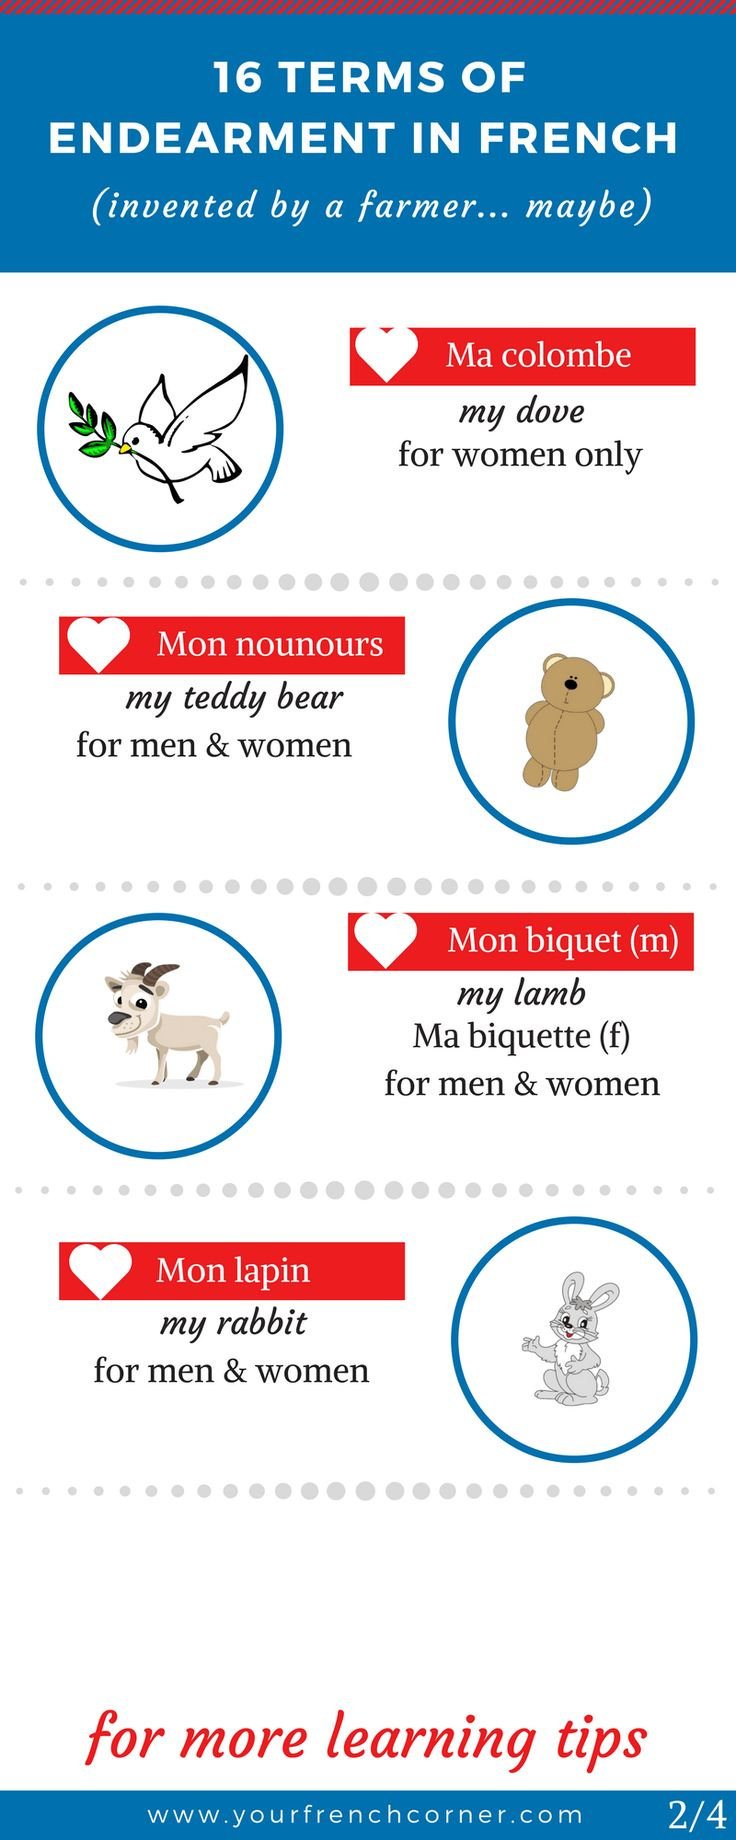 16 Unusual Endearment Terms In French (invented by a farmer… maybe) #learnfrench #fle #frenchimmersion